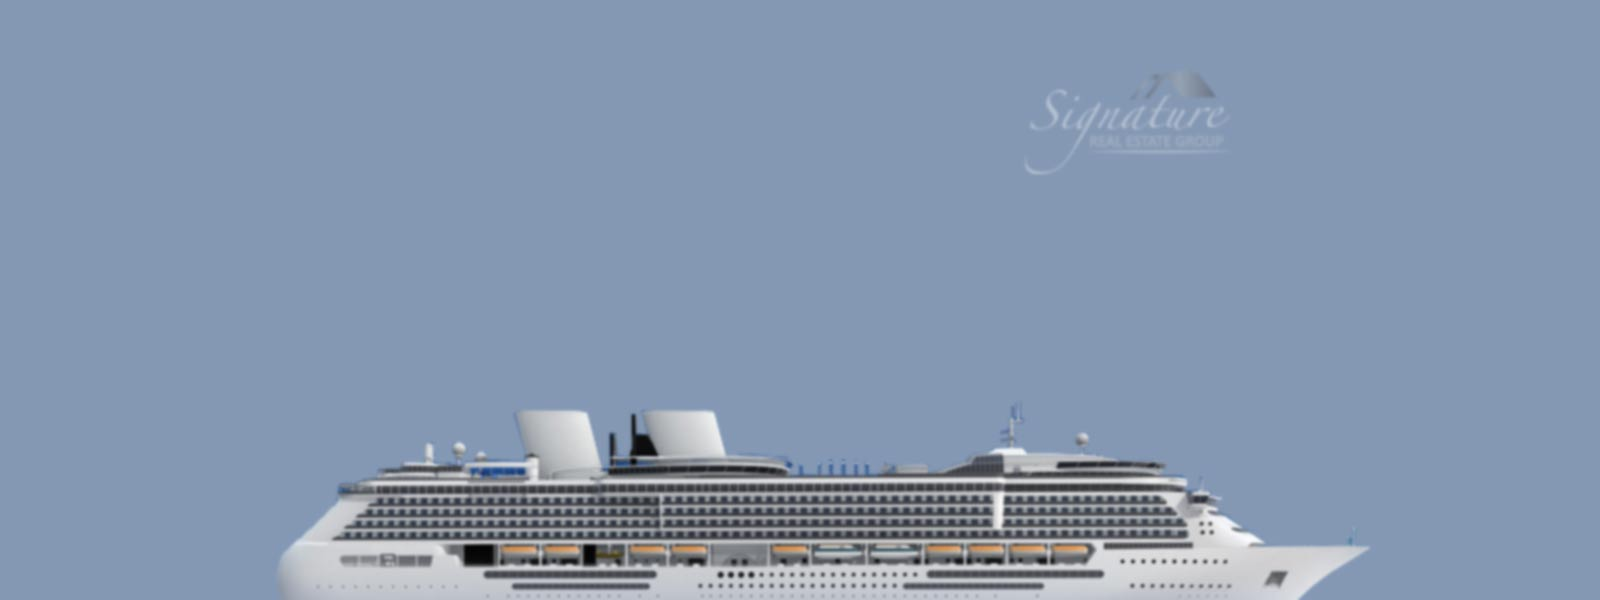 cruise-ship-blurred